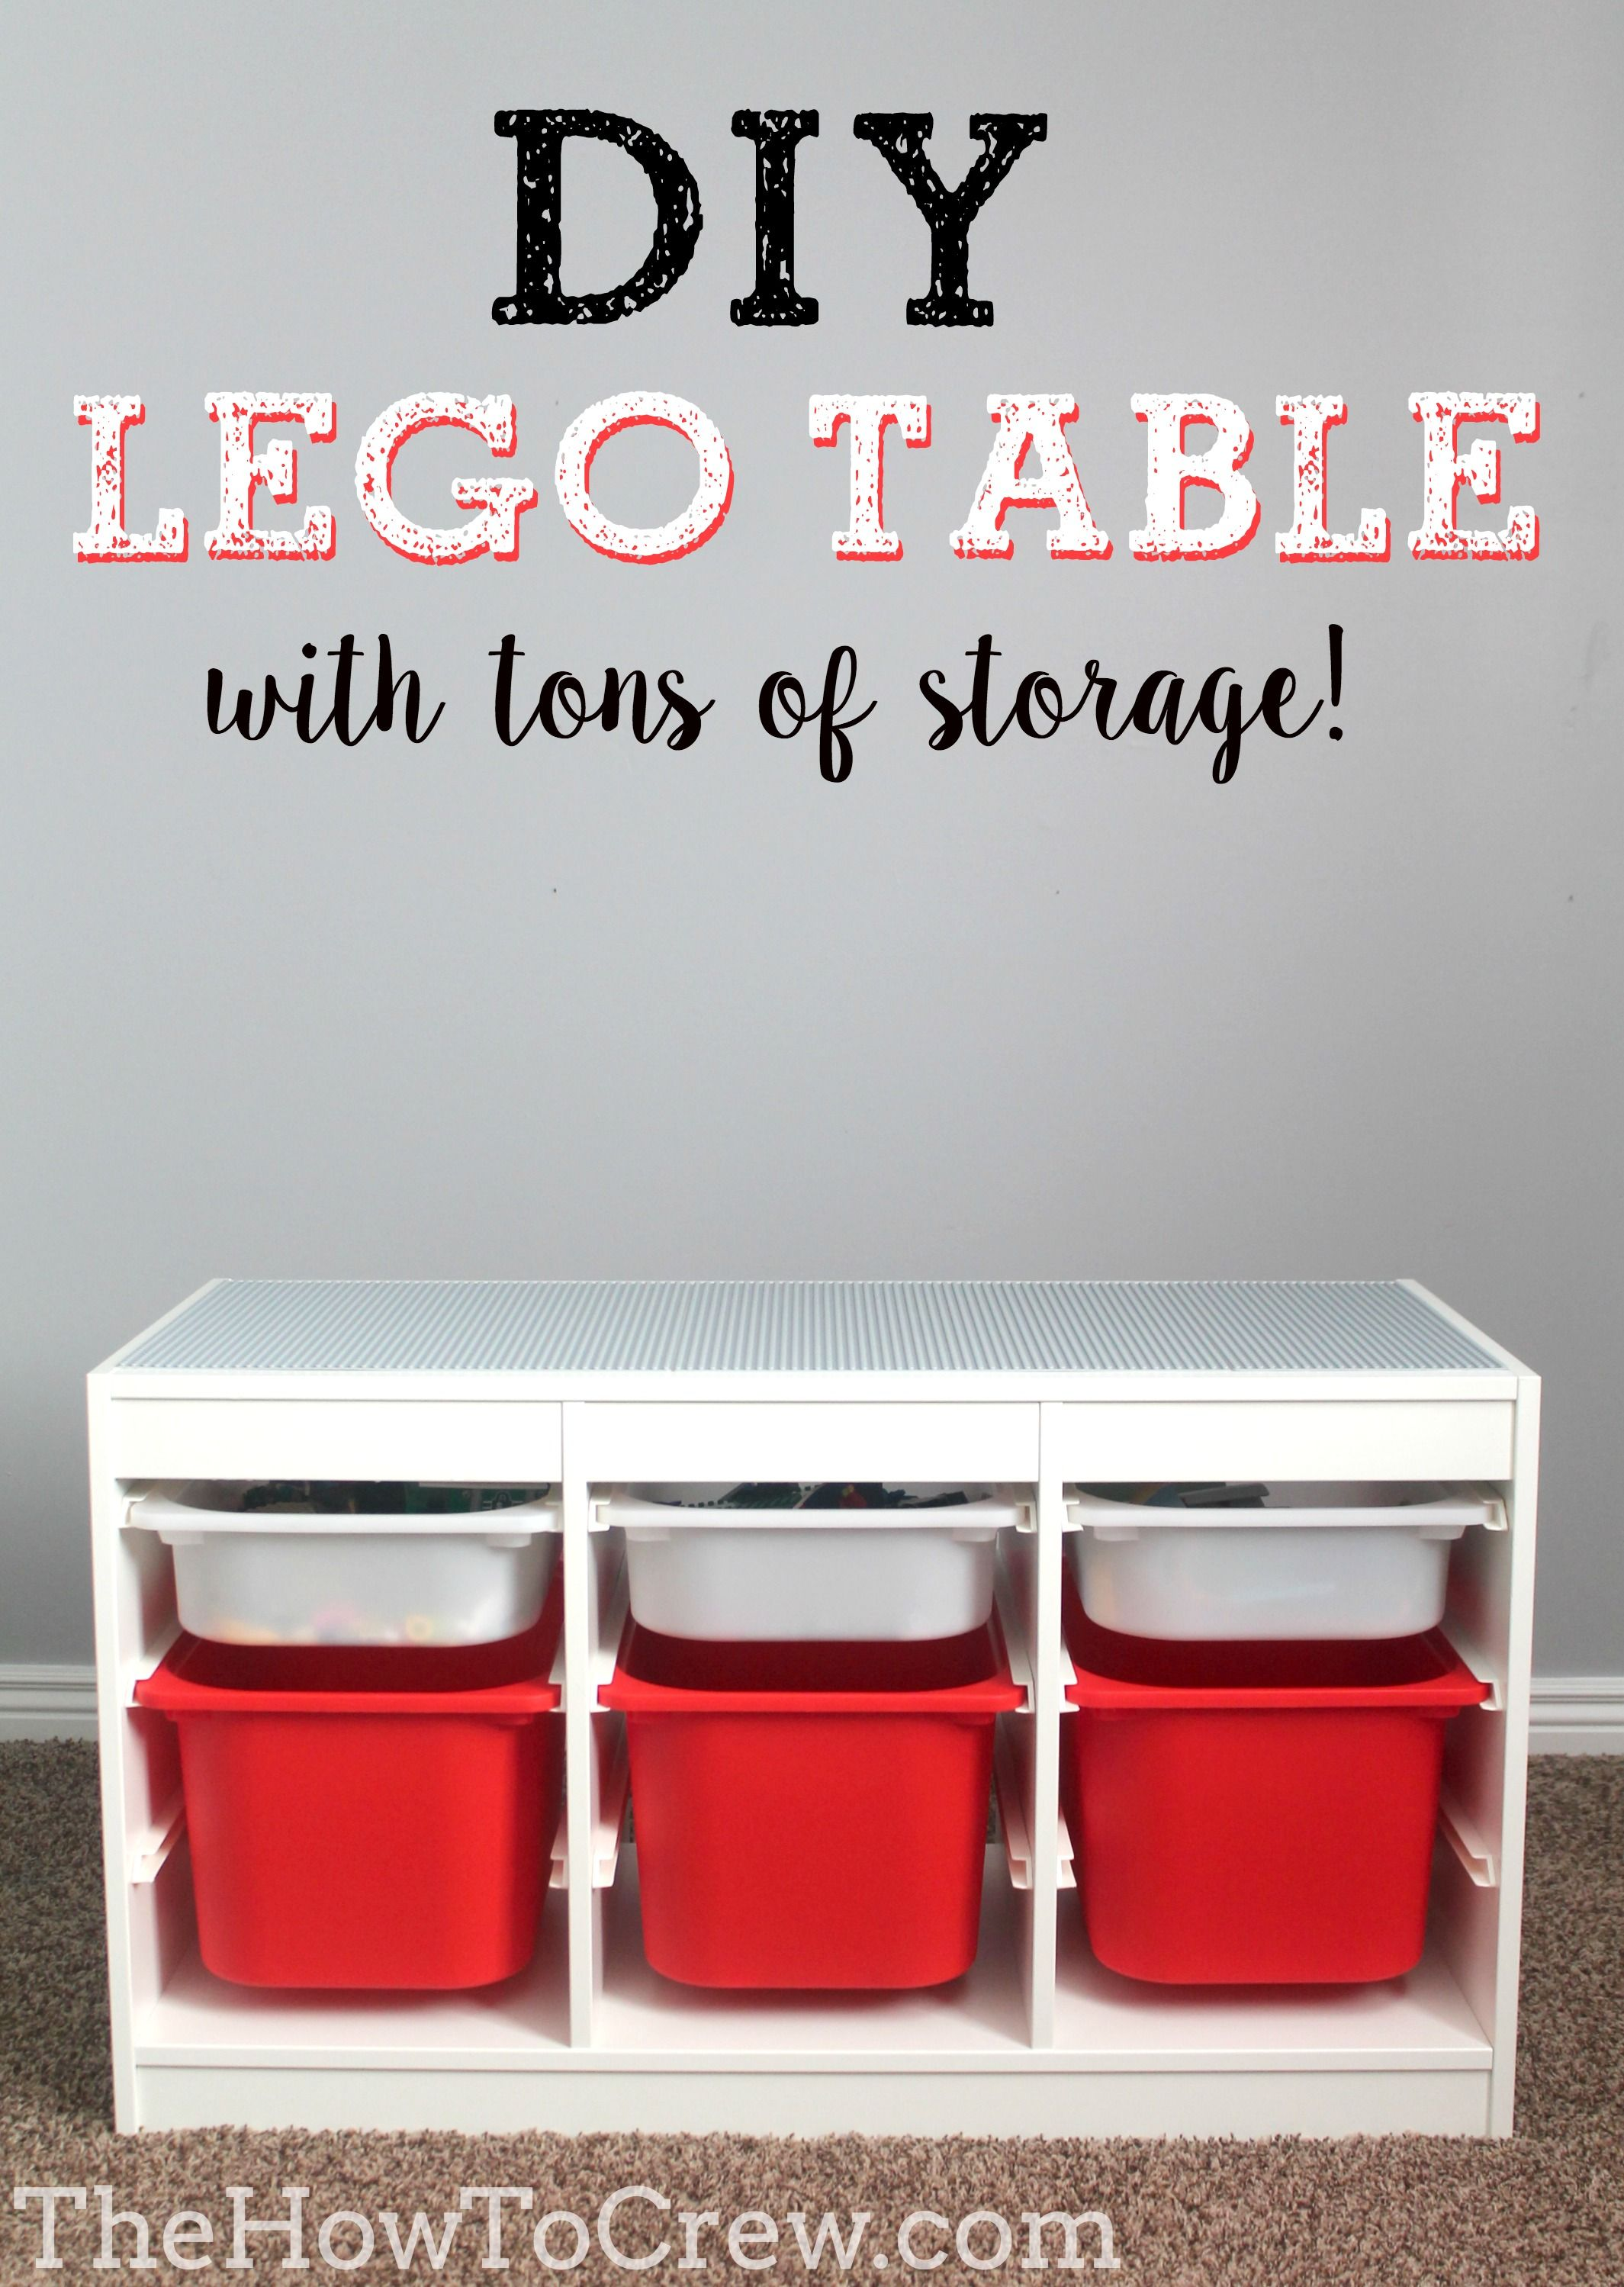 Lego Tisch Ikea Diy Lego Table With Tons Of Storage From Thehowtocrew